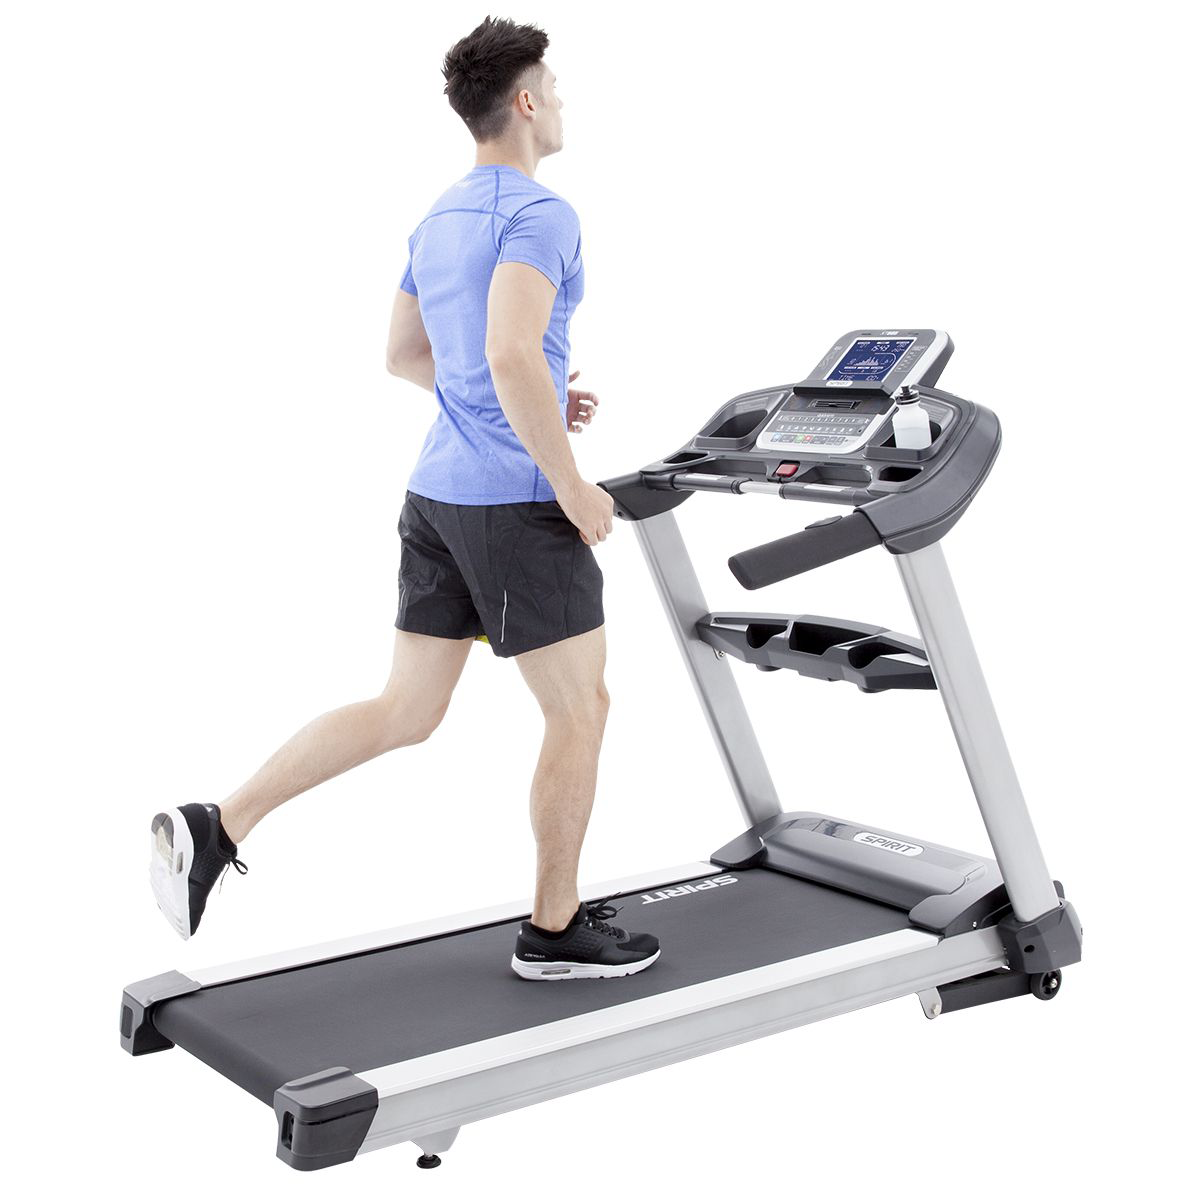 Spirit Fitness XT685 treadmill with male model wearing a blue t-shirt and black shorts